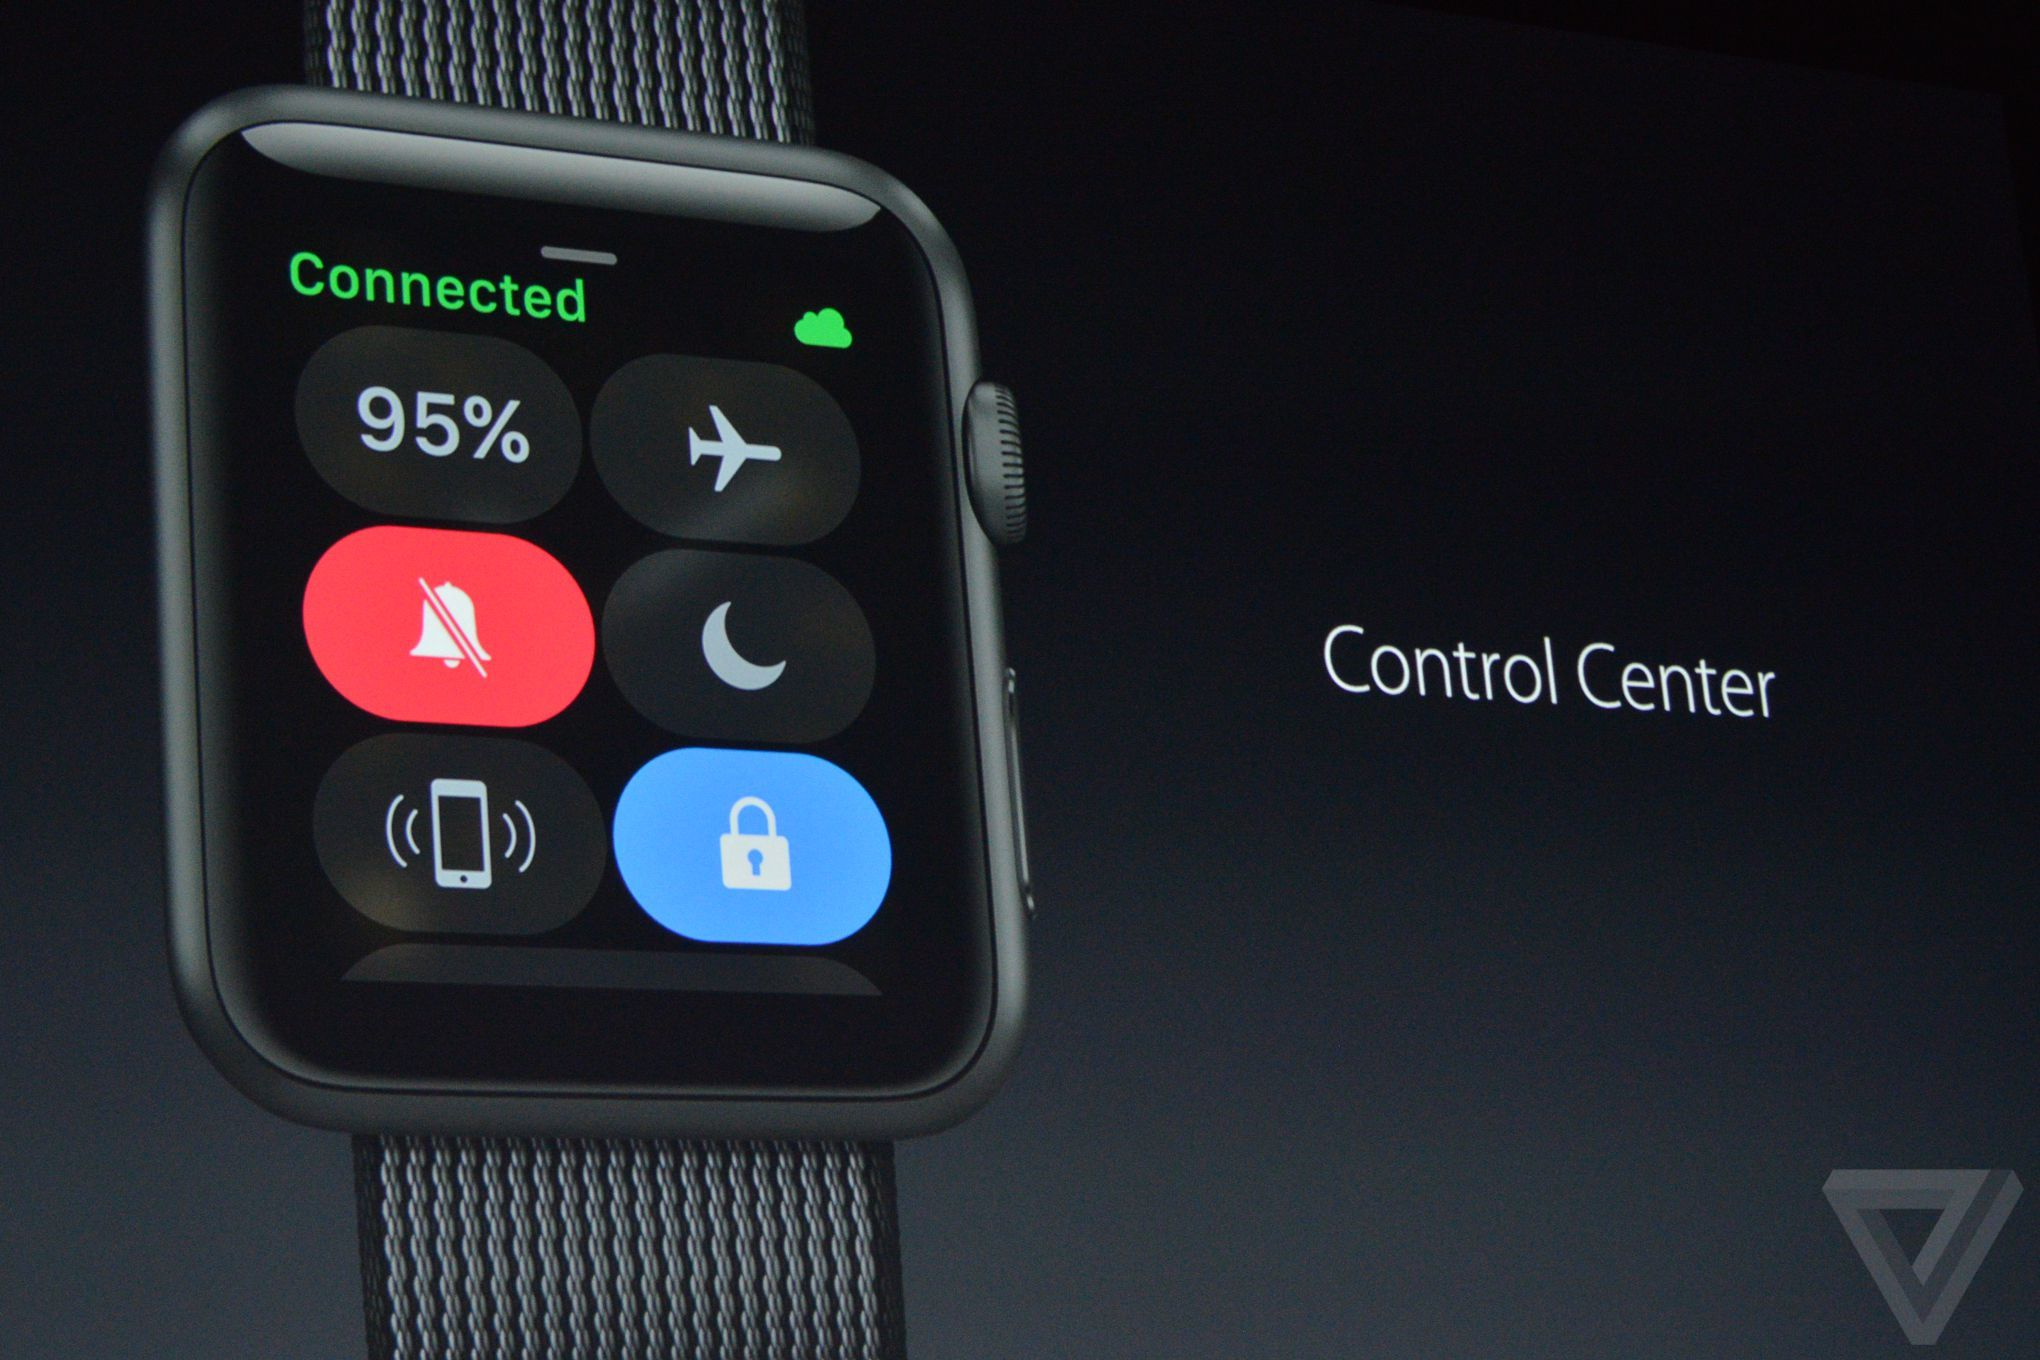 Watchos 3 major update now available - Watchos 3 At Wwdc16 Announcement Photos